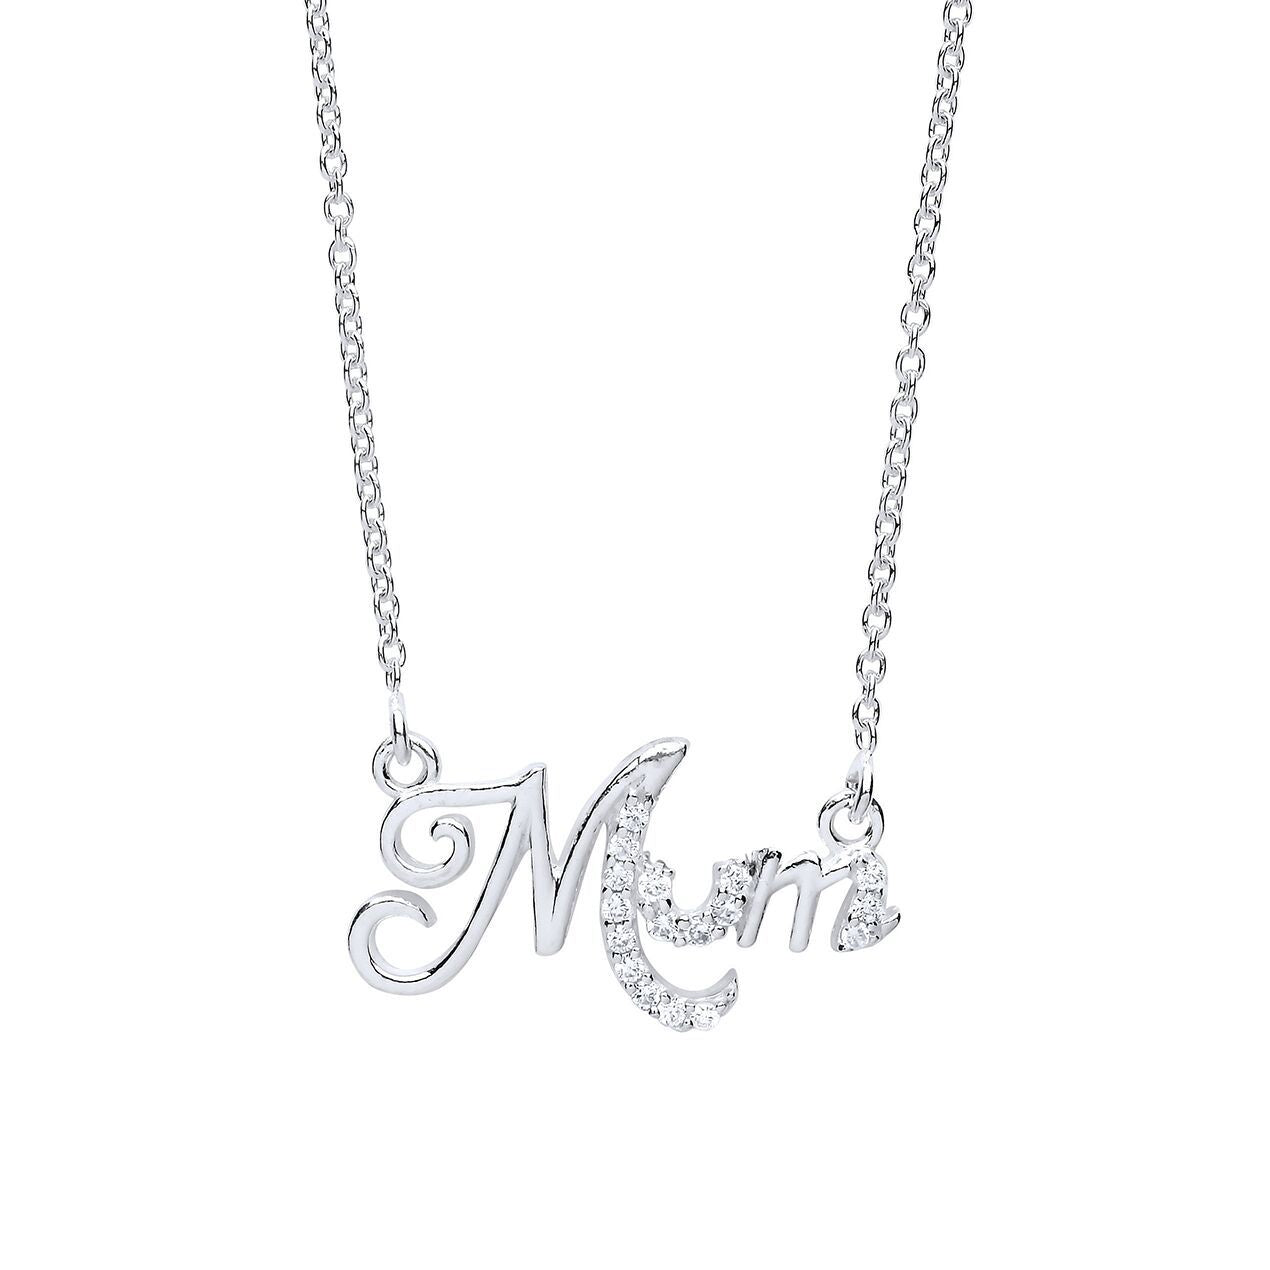 Silver Mum Necklace with Cubic Zirconia's Jewellery Ian Dunford